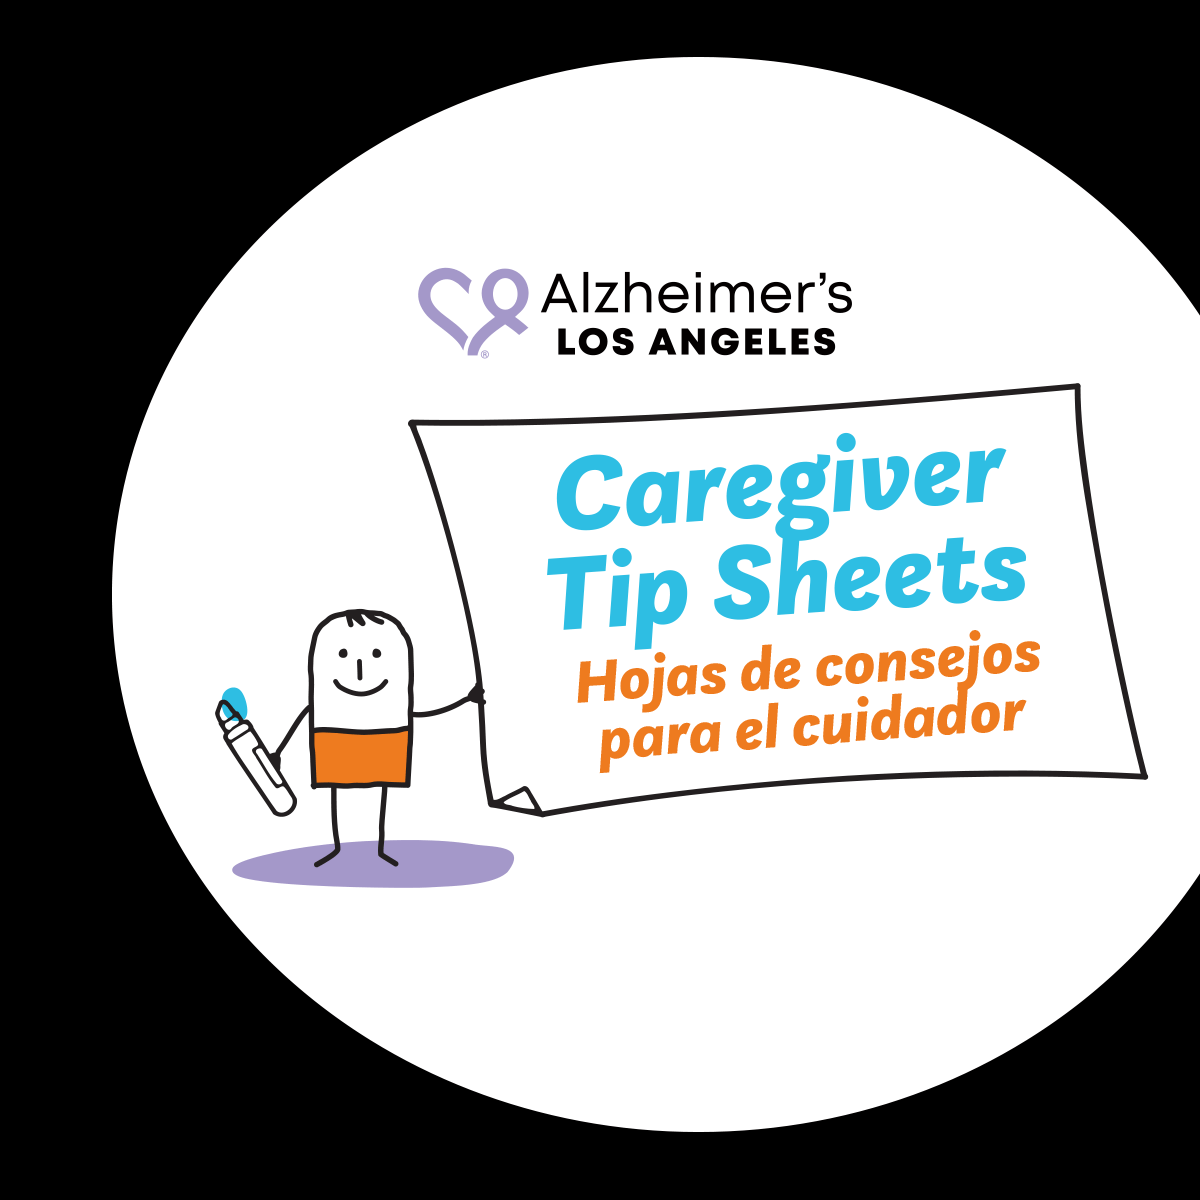 Caregiver Tip Sheets cover